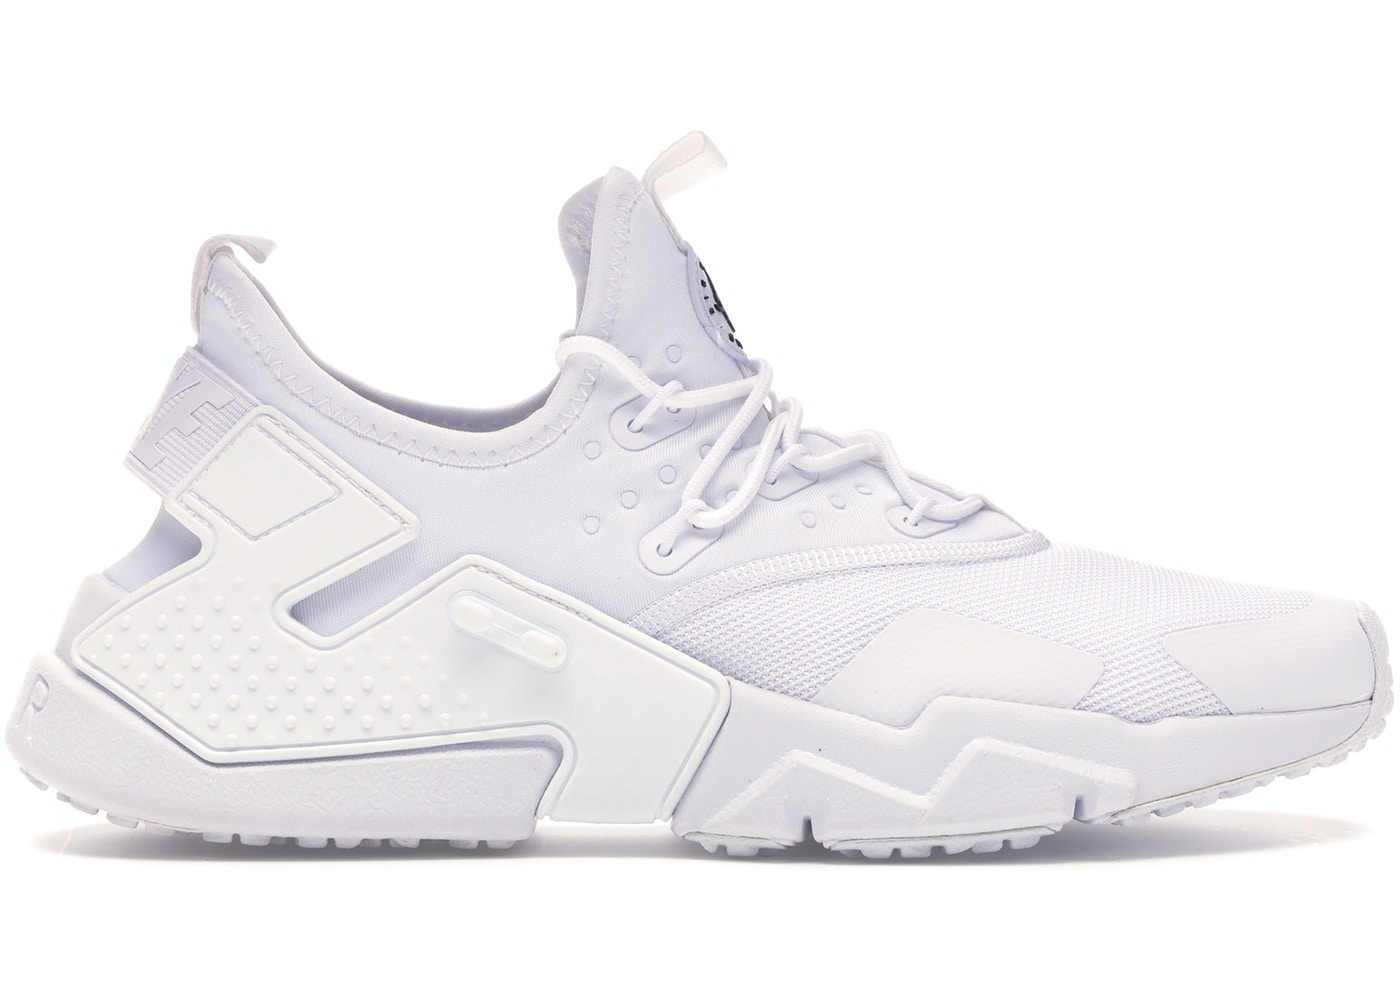 6aaa4f5b70 Air Huarache Drift Triple White - AH7334-100